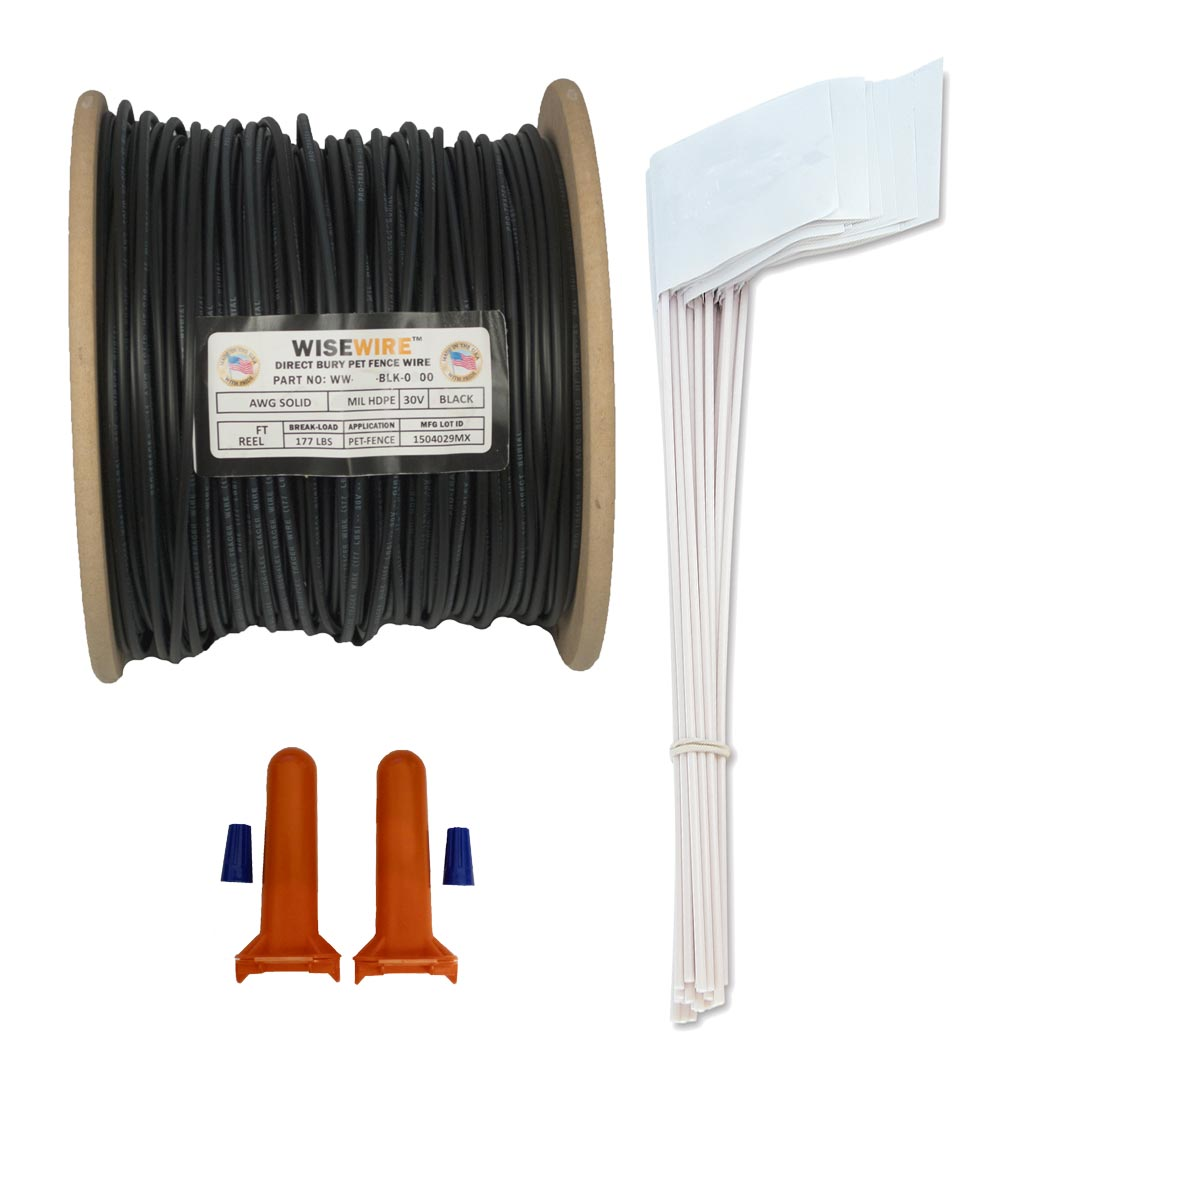 WiseWire? 18 gauge Boundary Wire Kit 500ft